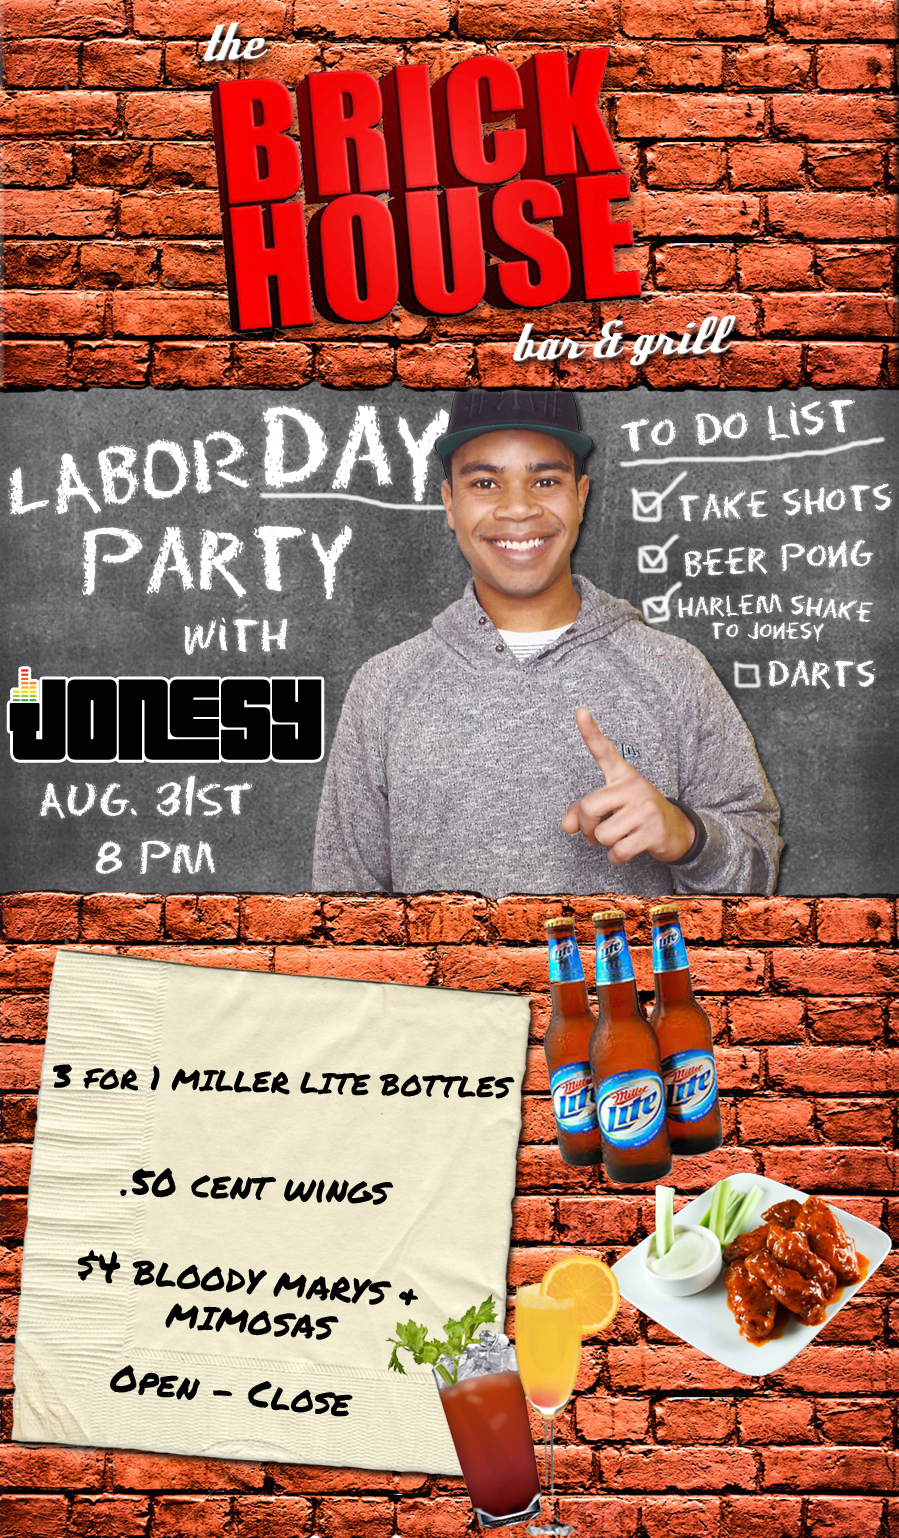 LABOR DAY: Sunday Aug.  31st - we bring the party to THE BRICKHOUSE BAR & GRILL @ 8PM.  3 For 1 Miller Lite Bottles, .50 cent wings & $4 Bloody Marys + Mimosas.  Open - Close.  Stamford, meet me there!